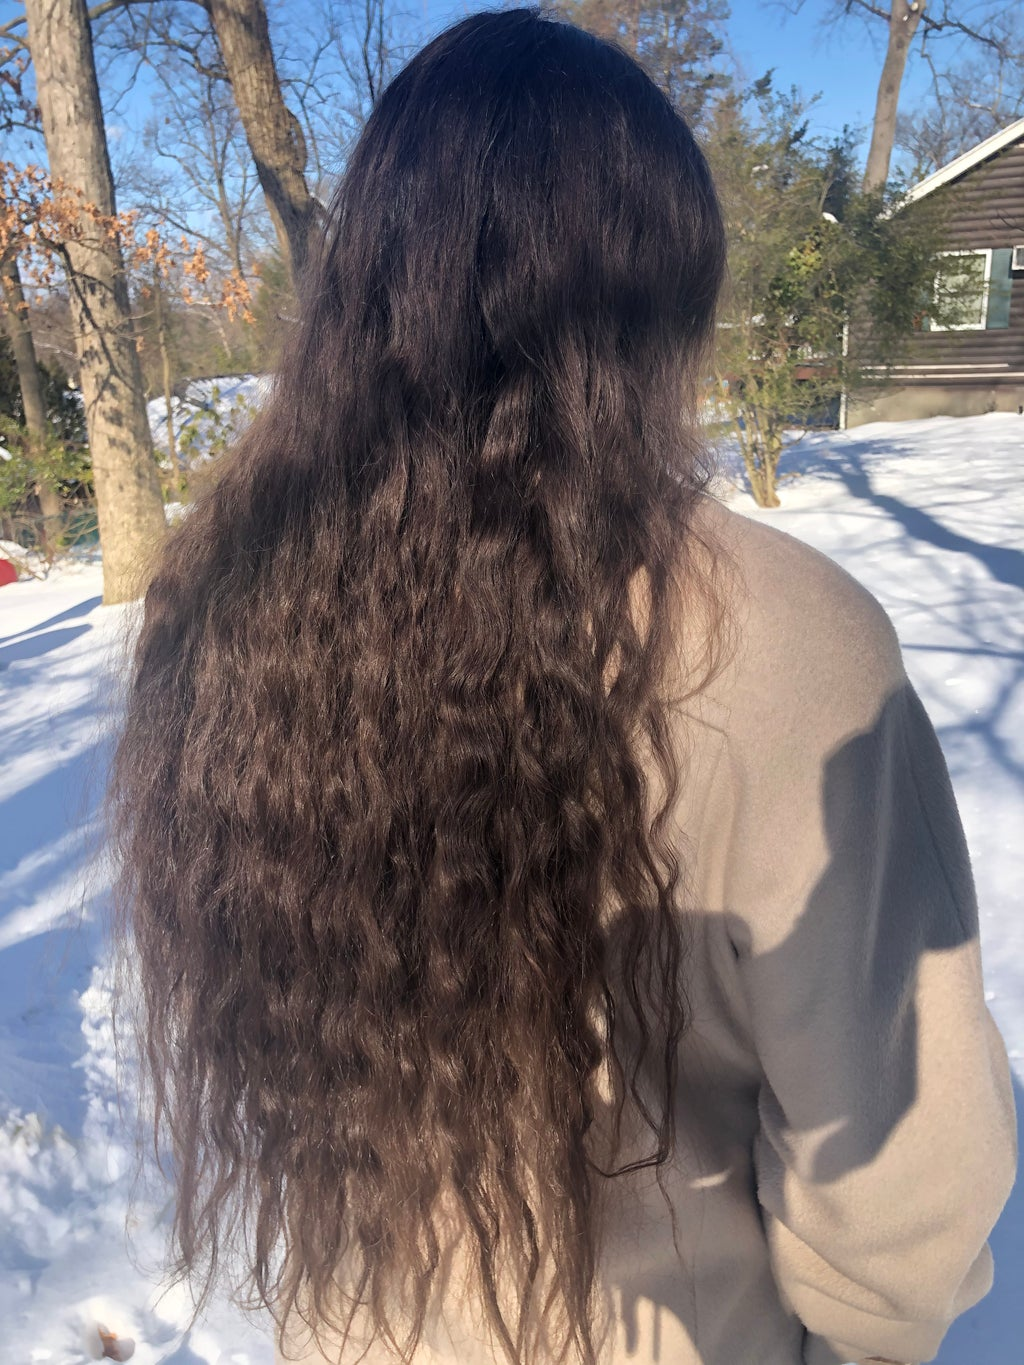 Wavy hair pic taken outside in the snow